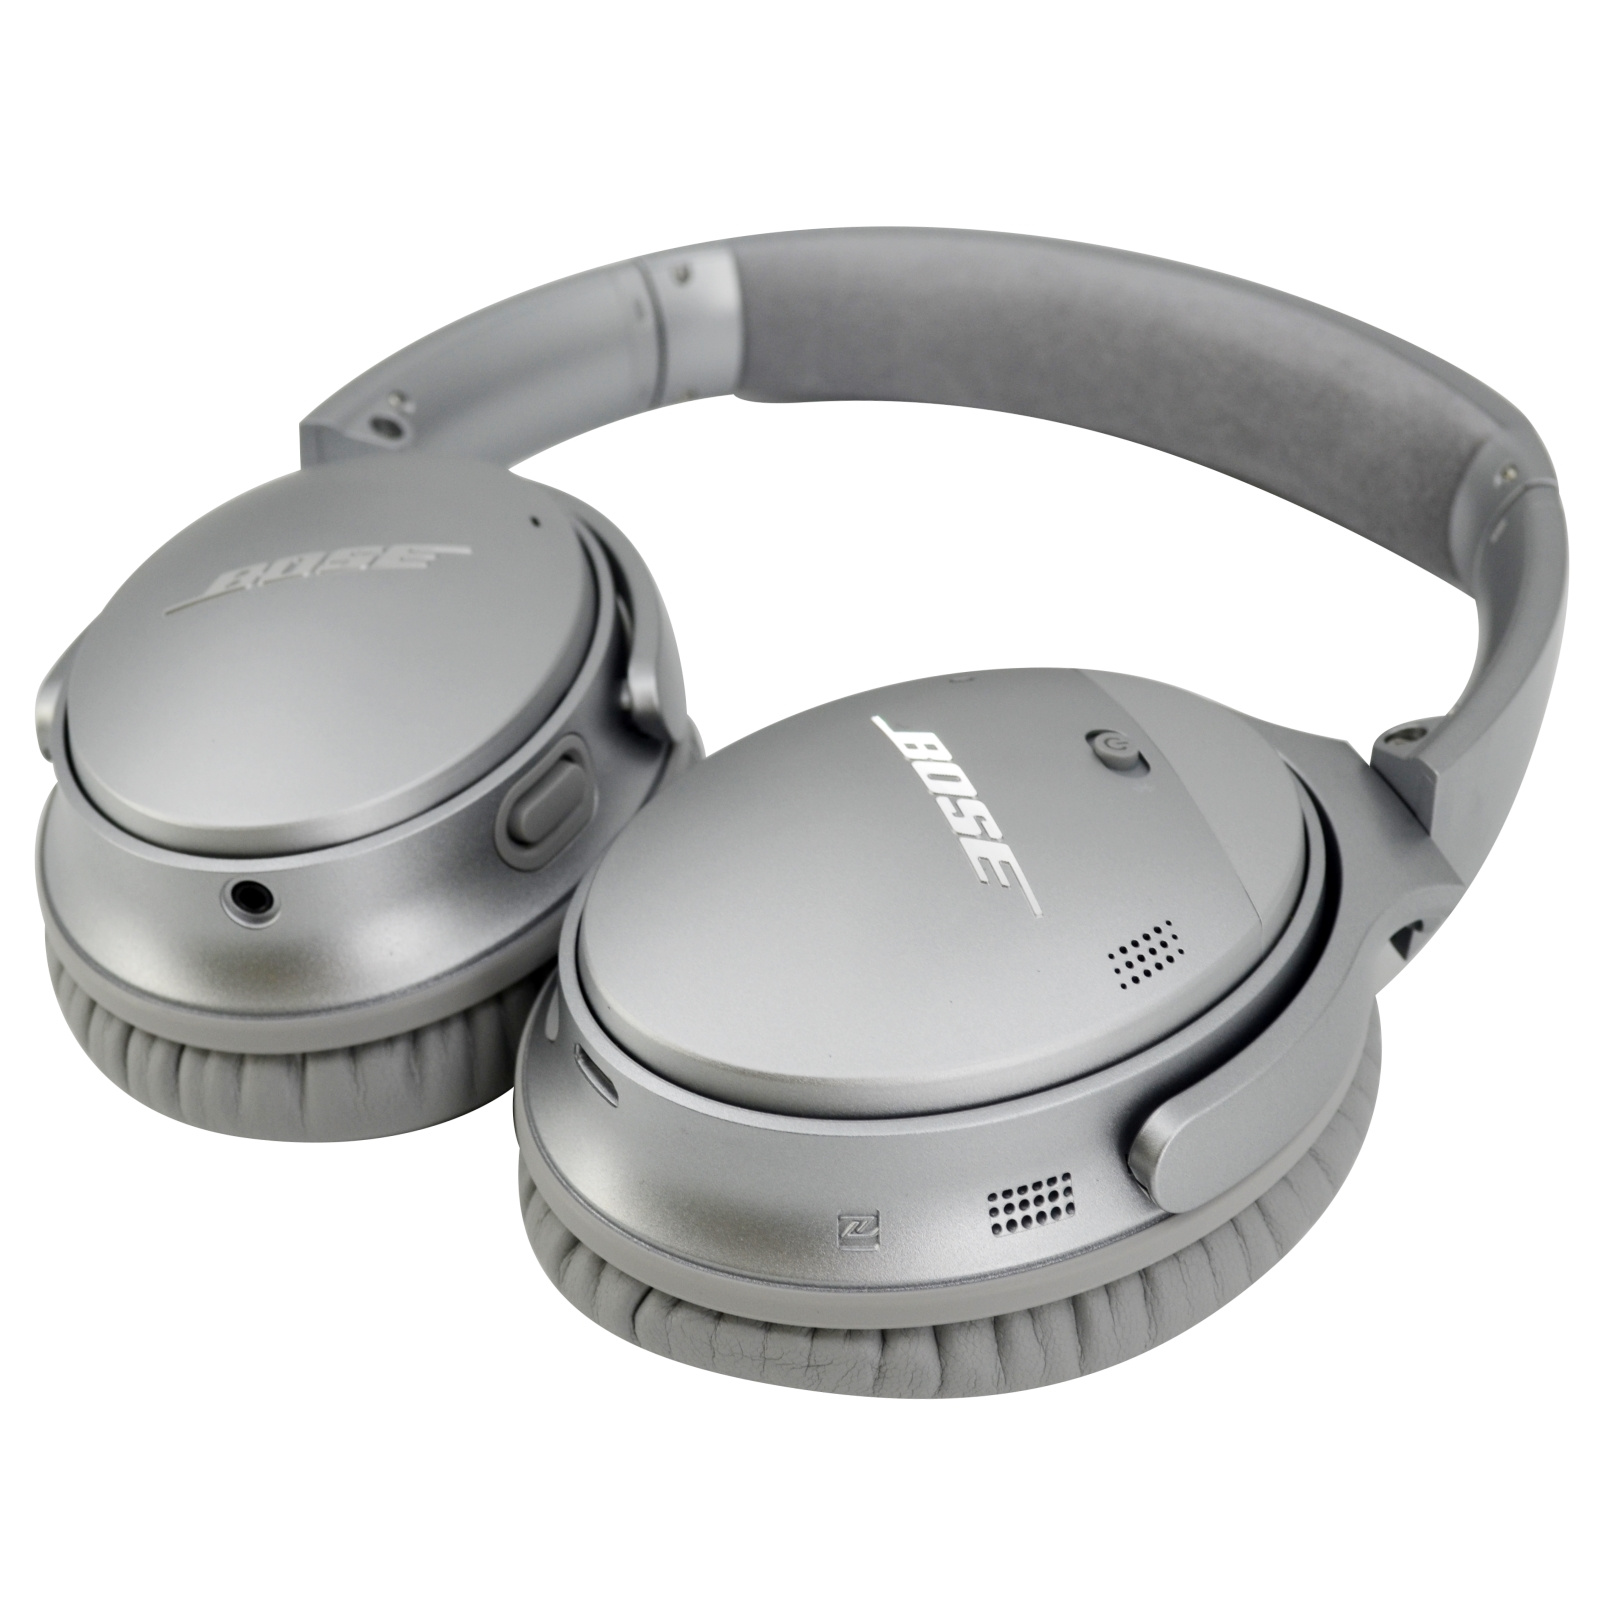 ac22c6ef7fb Bose QuietComfort QC35-II Wireless Noise Cancelling Over-Ear Headphones -  Silver - with Google.